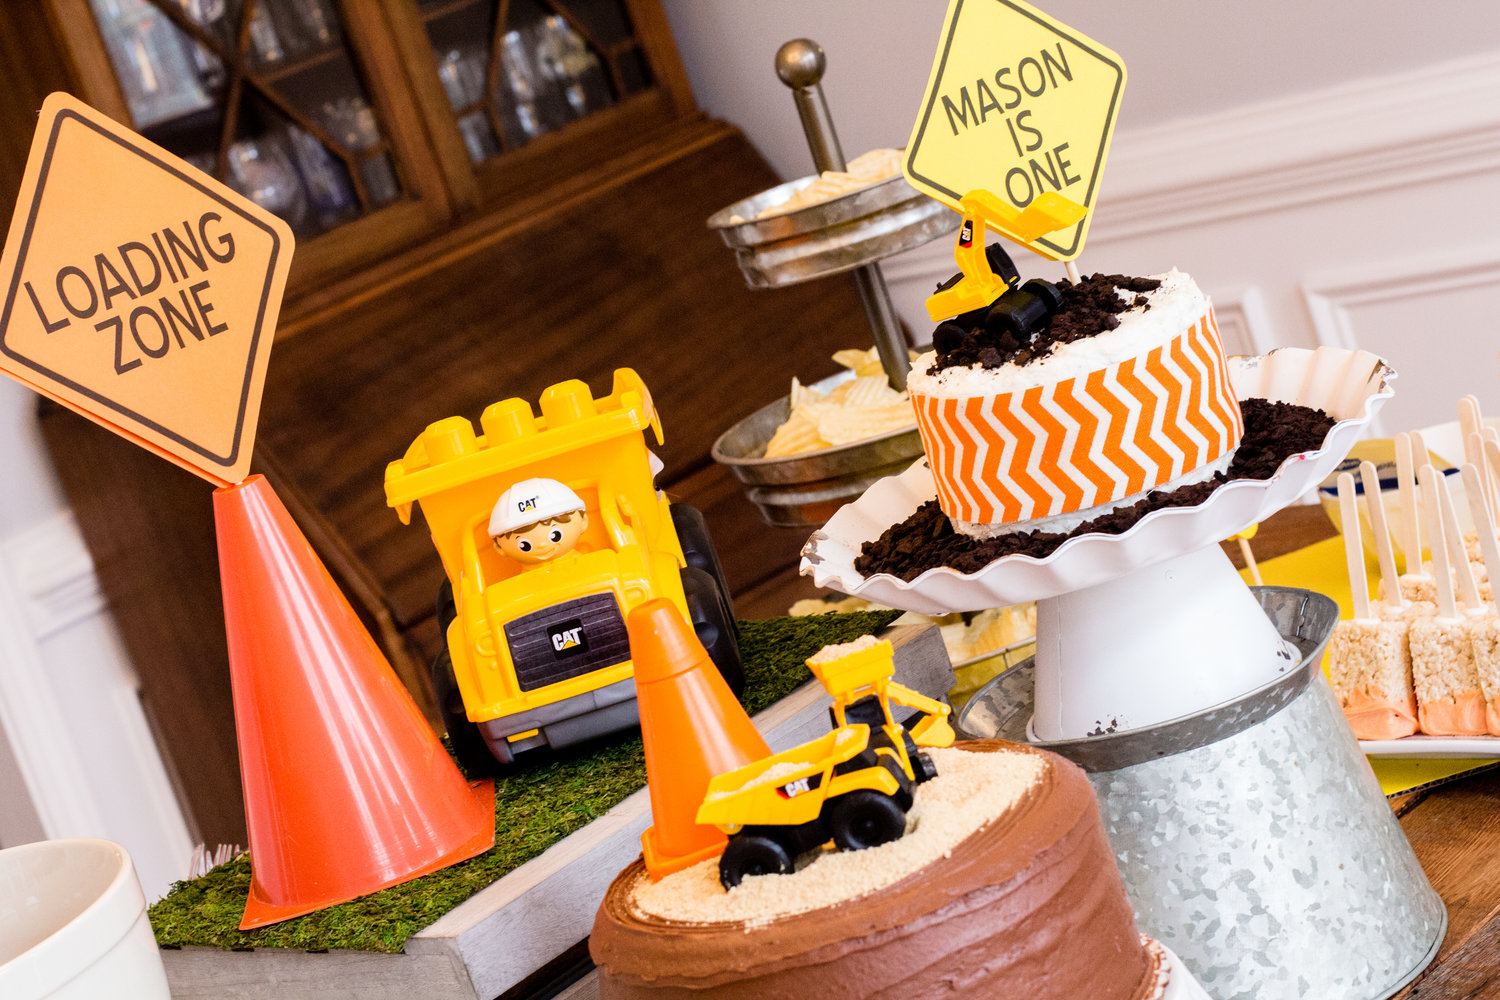 162d2c2dd Construction Themed Party & Free Printables Sweetwood Creative Co. |  Atlanta Wedding Planner + Upscale Event Design